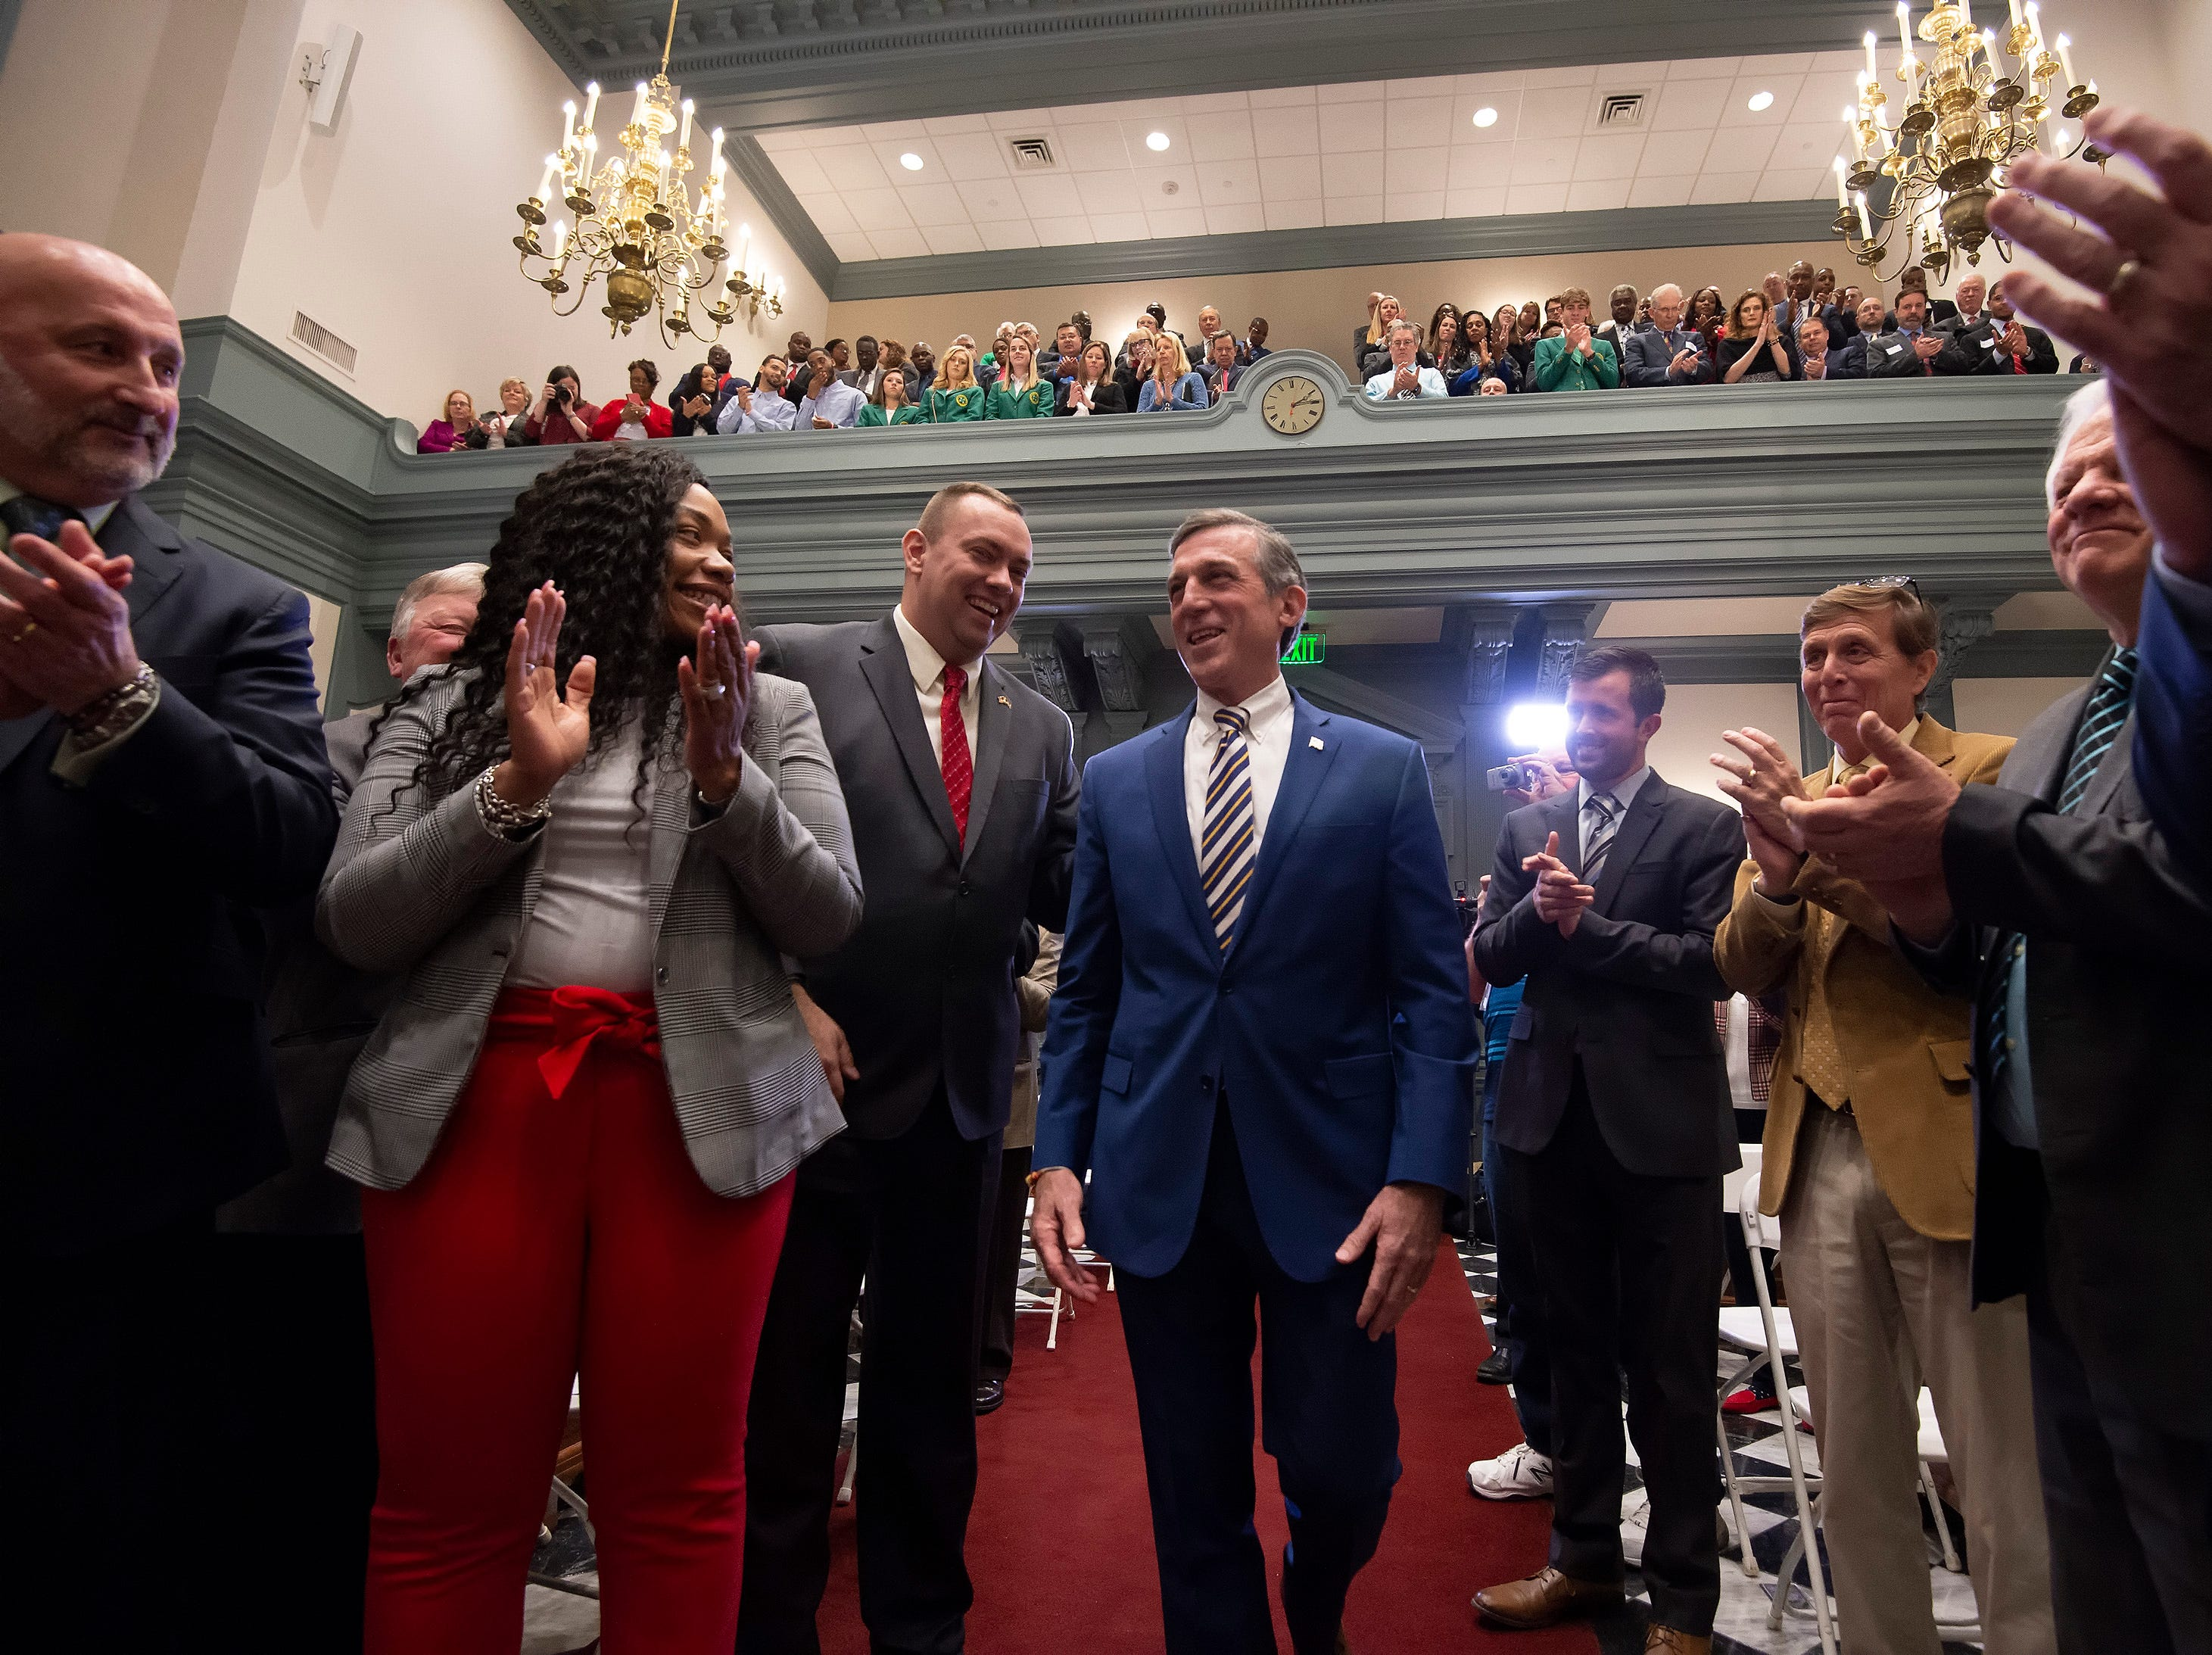 Governor John Carney arrives inn the Senate Chambers to give his State of the State Address.